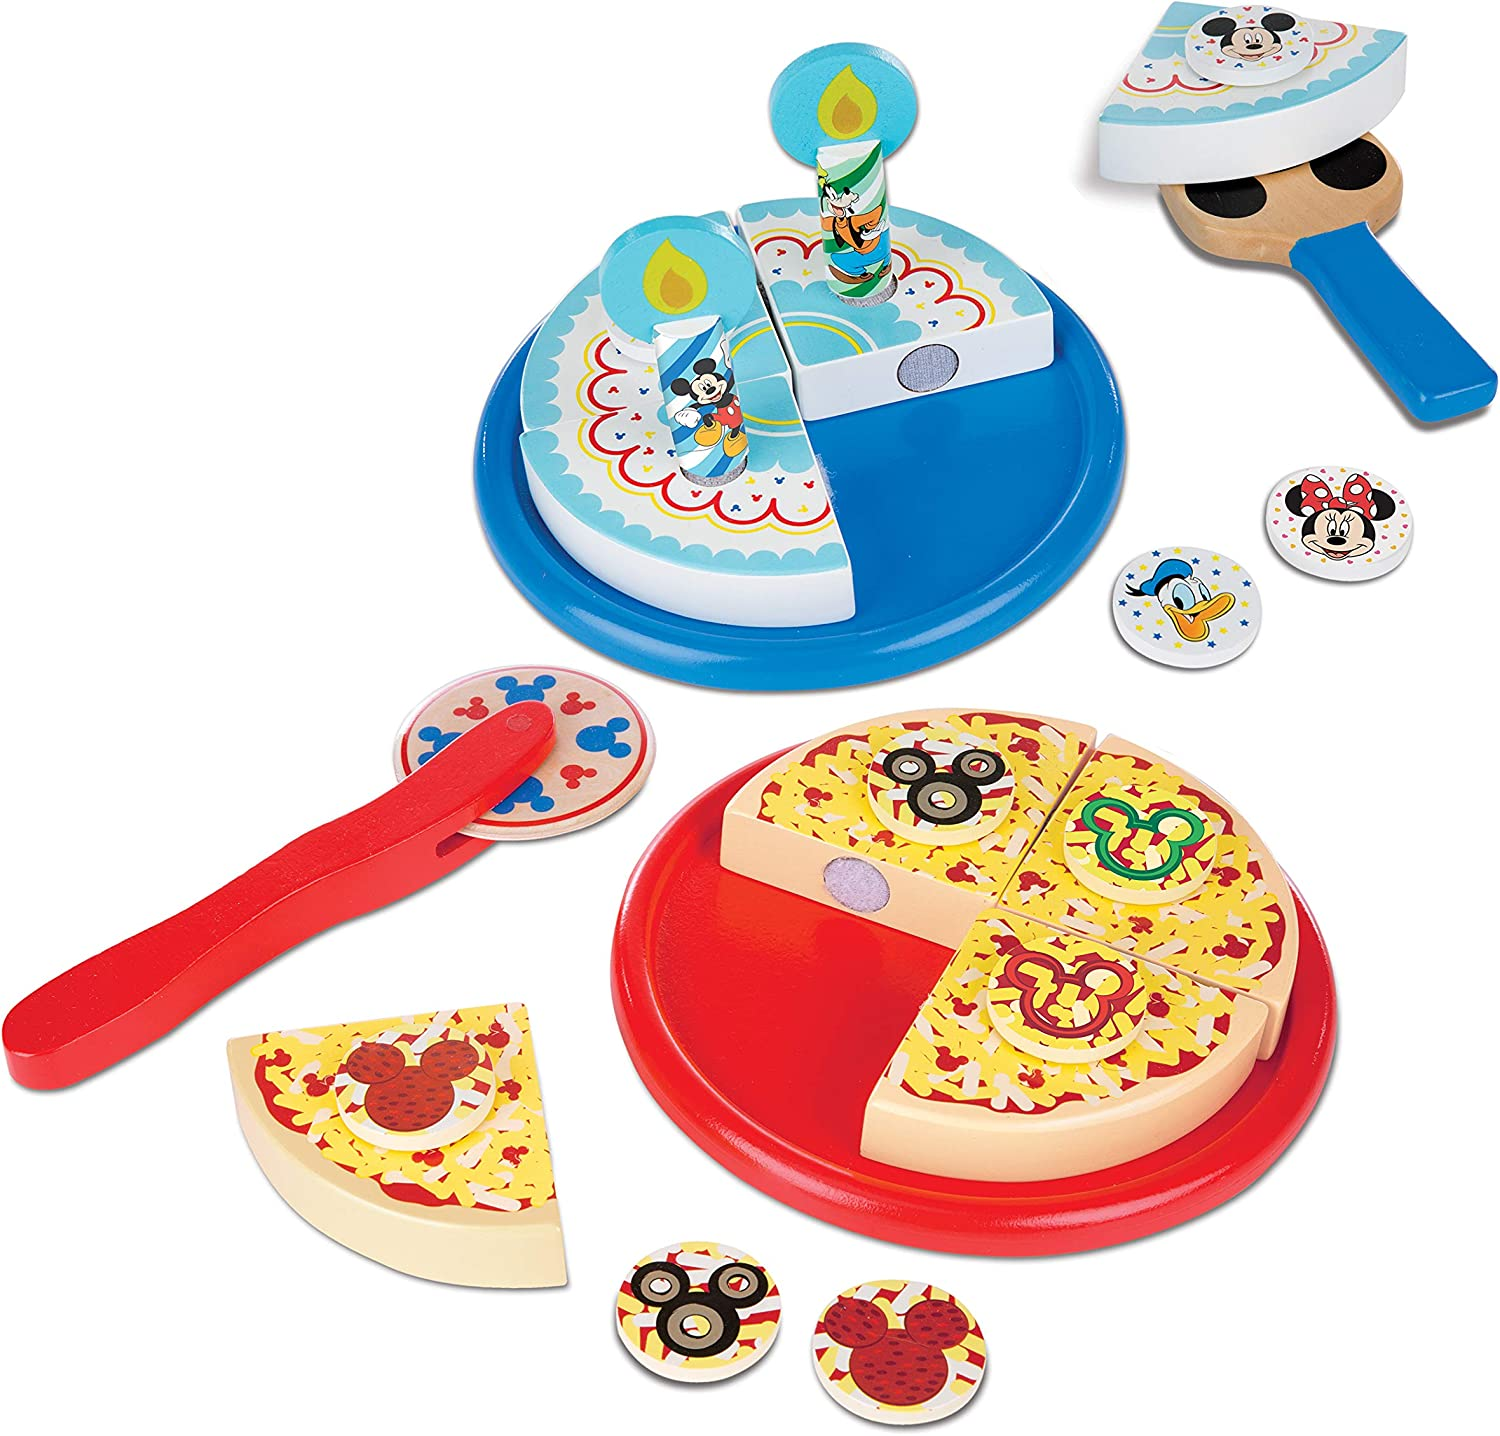 Melissa & Doug Disney Mickey Mouse Wooden Pizza and Birthday Cake Set (E-Commerce Packaging)